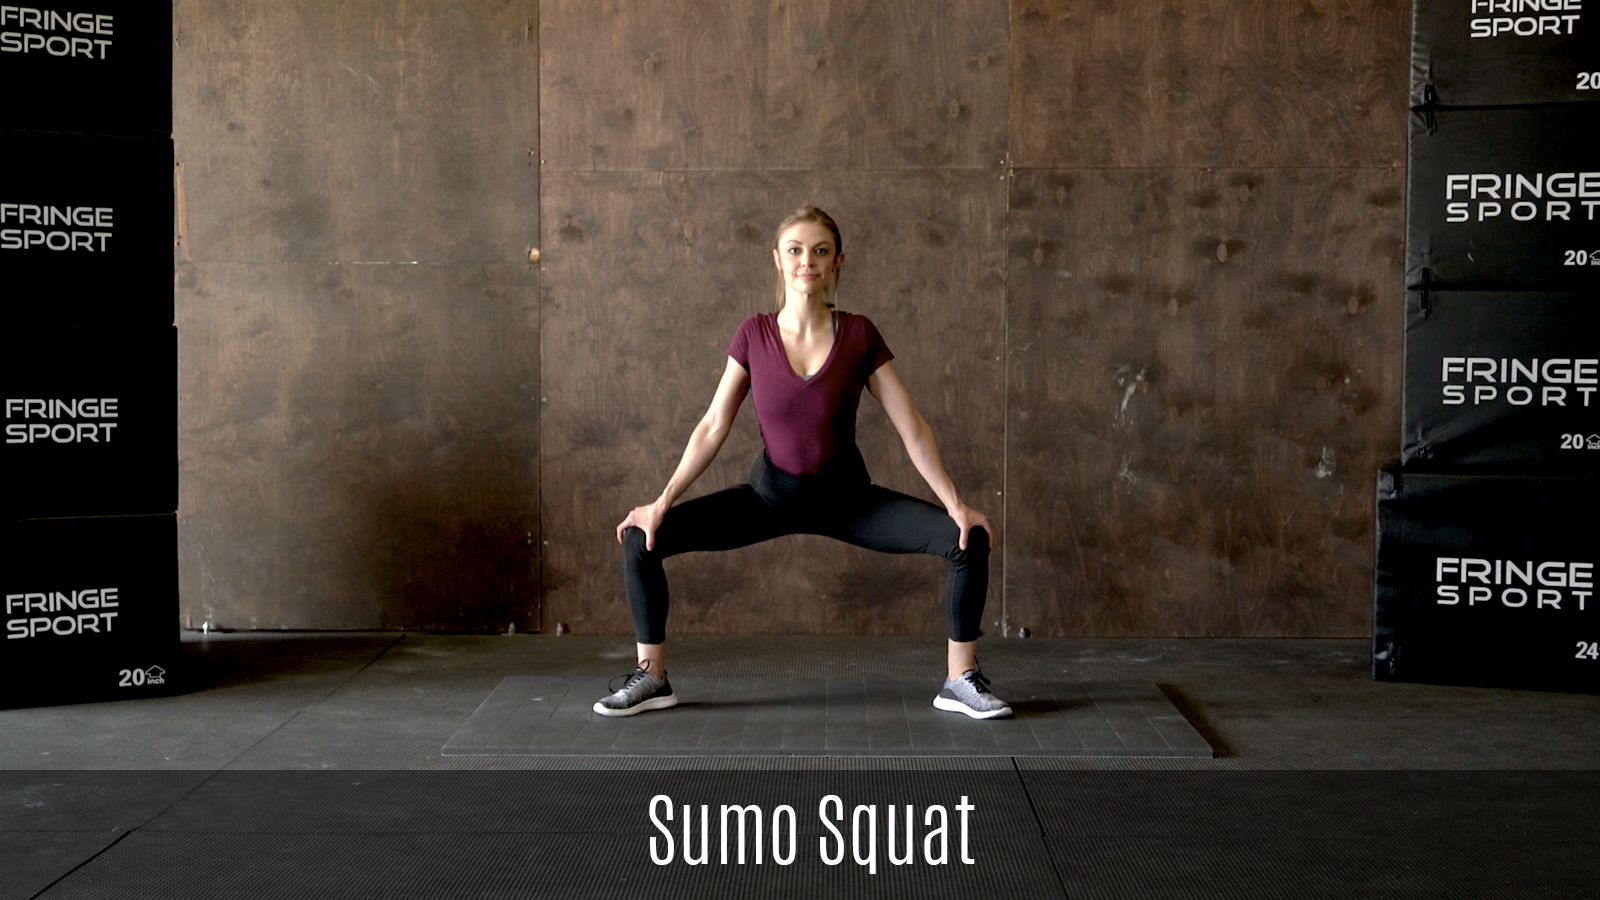 sumo squat movement demo